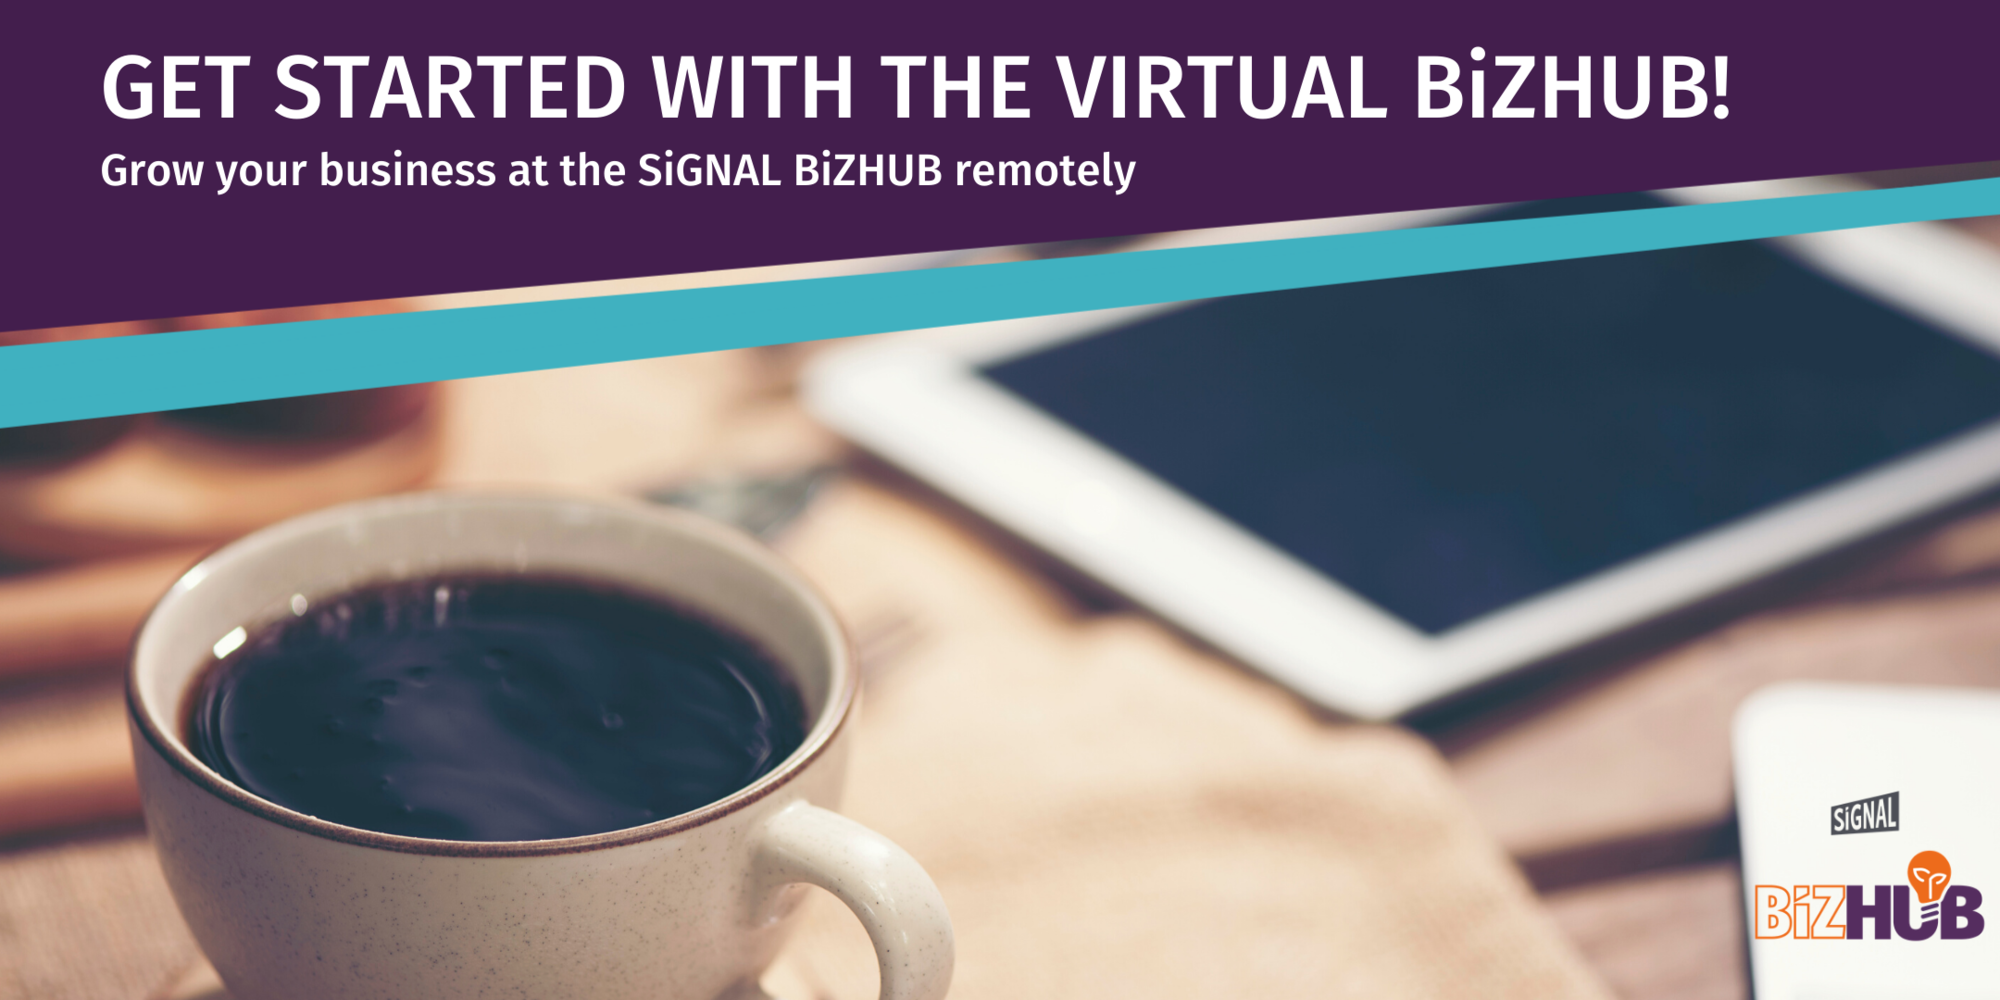 Virtual BiZHUB remote sessions